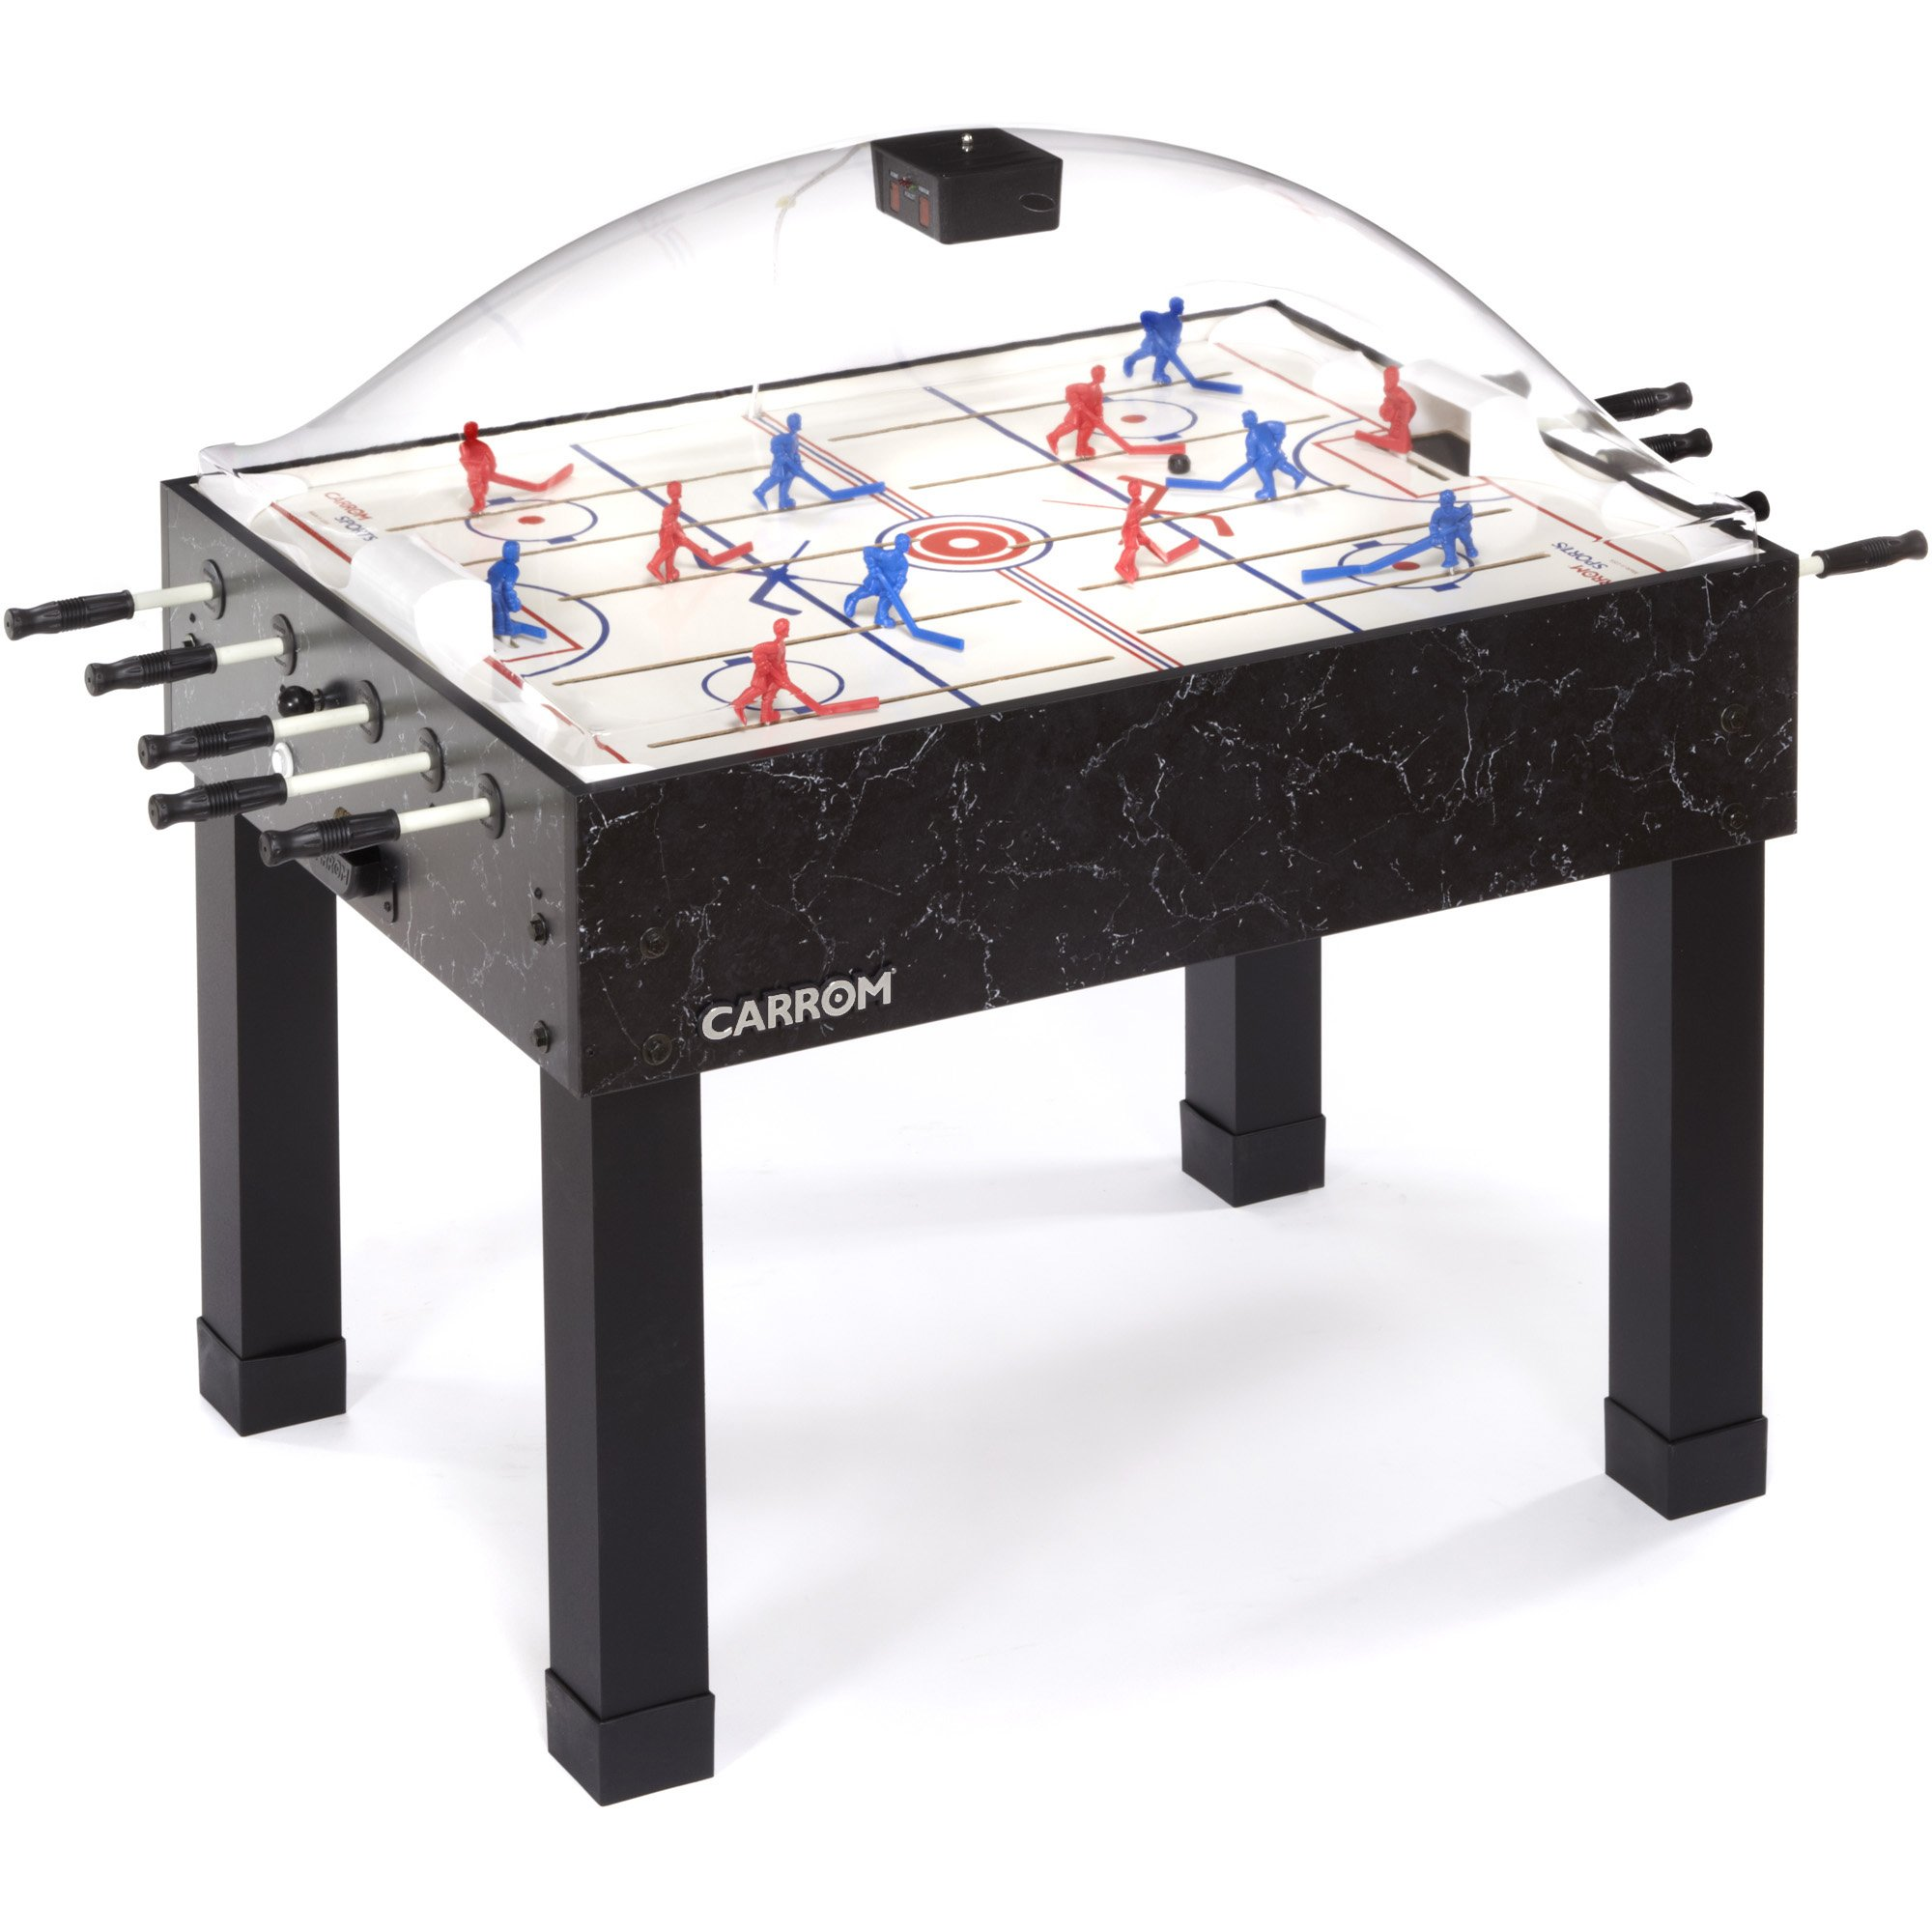 Carrom 415 Super Stick Hockey Table by Carrom